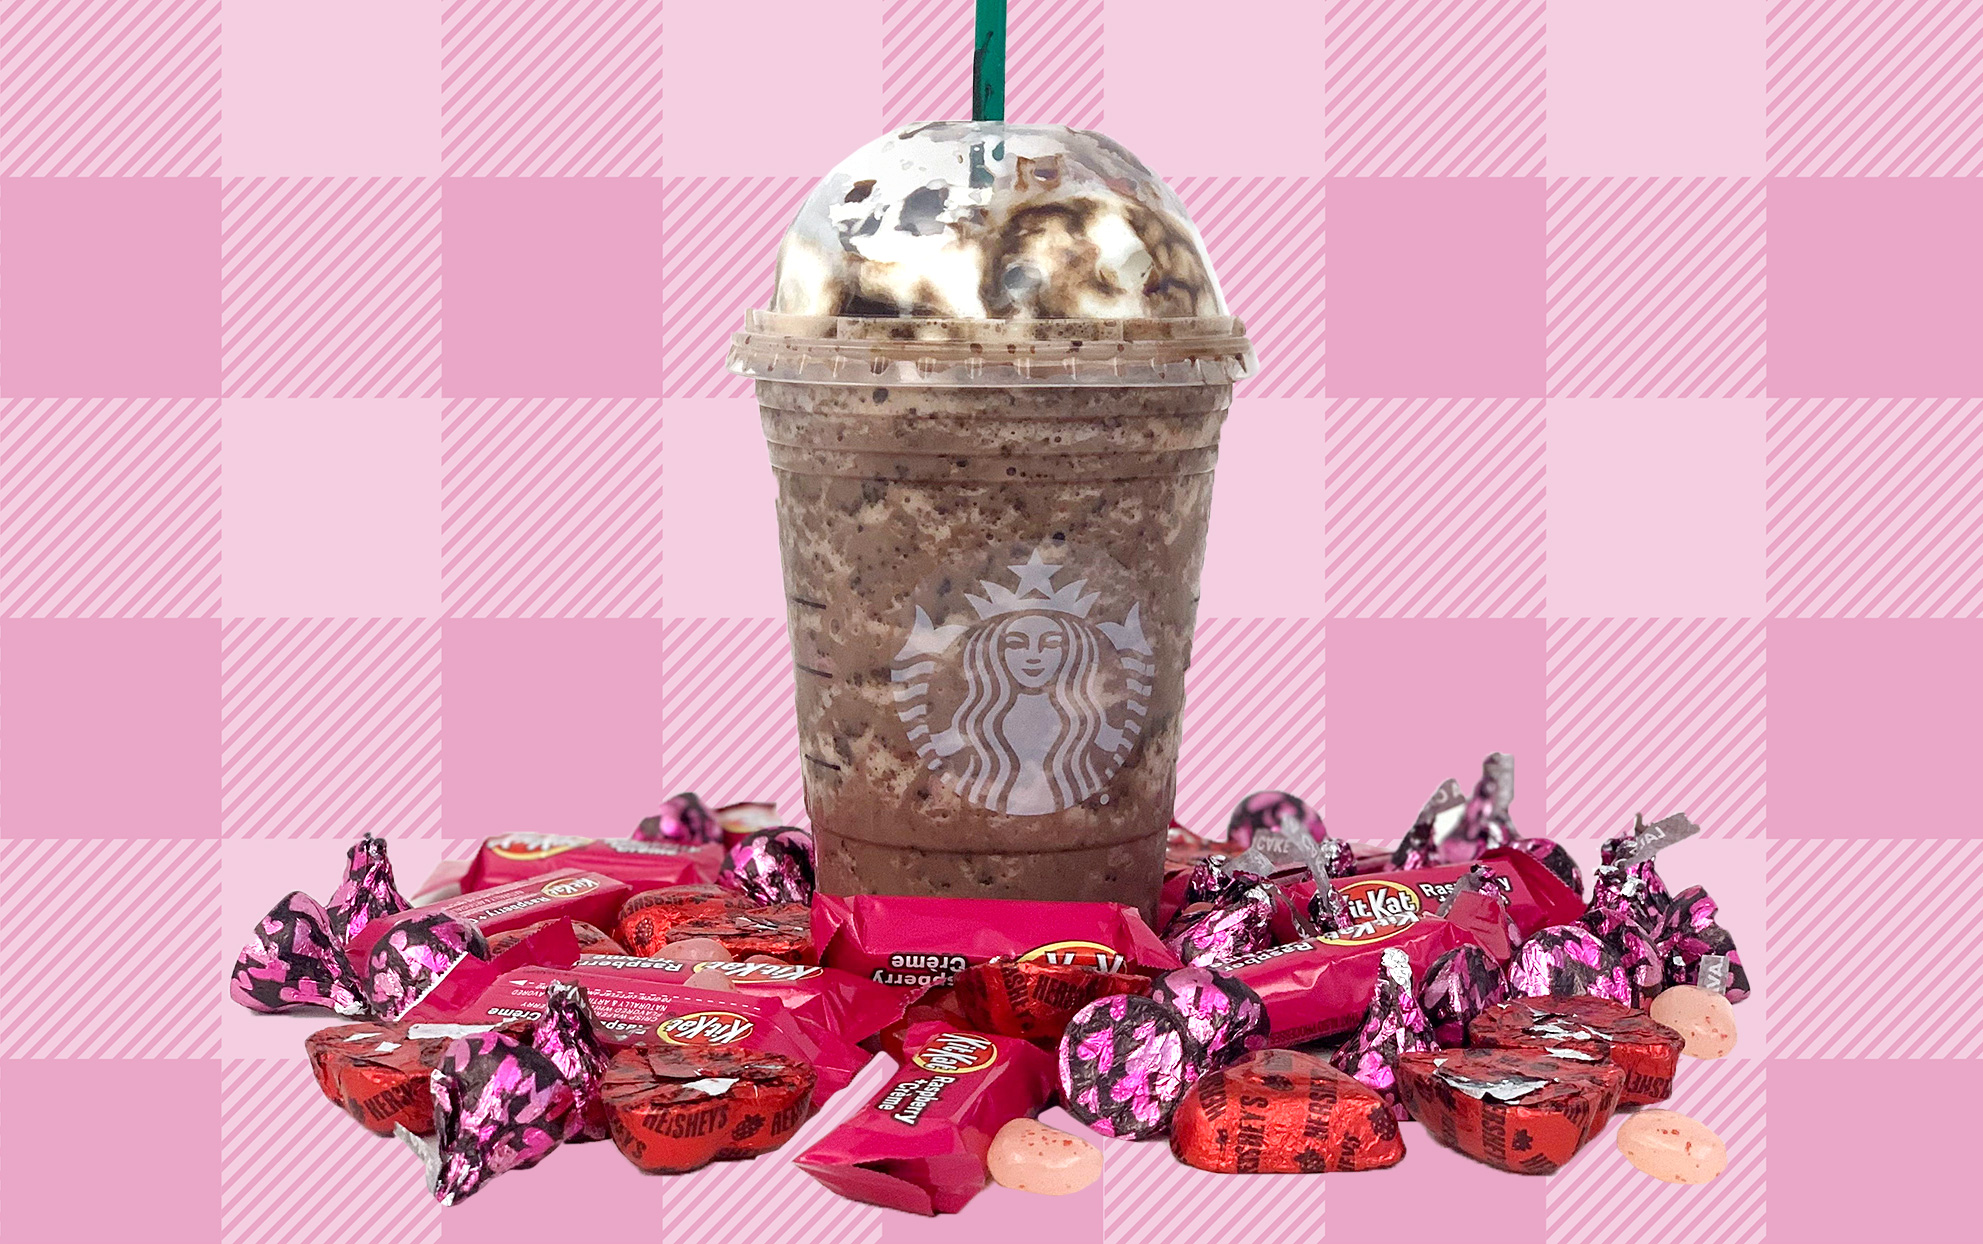 chococolate covered strawberry frappuccino